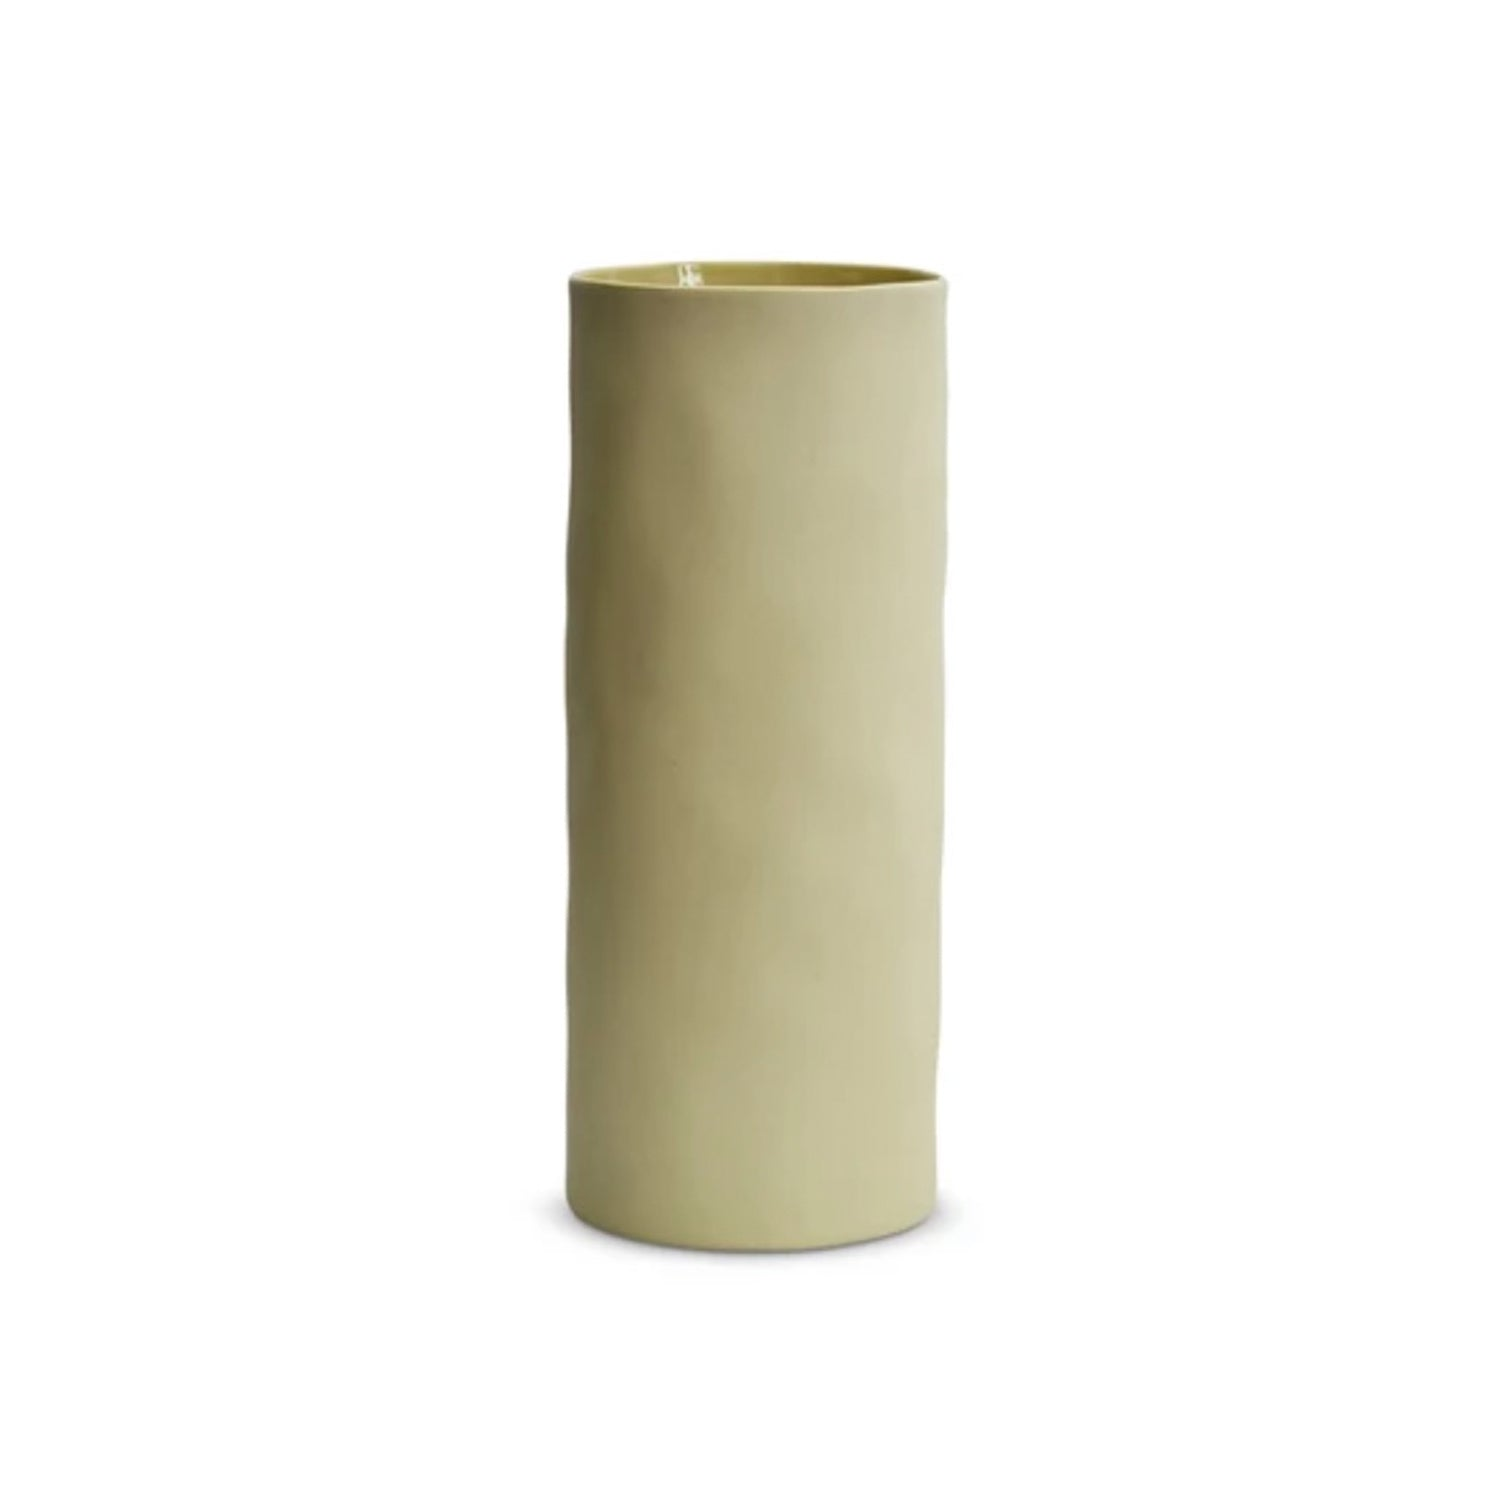 VASE - Cylinder ceramic - LEMON - XL